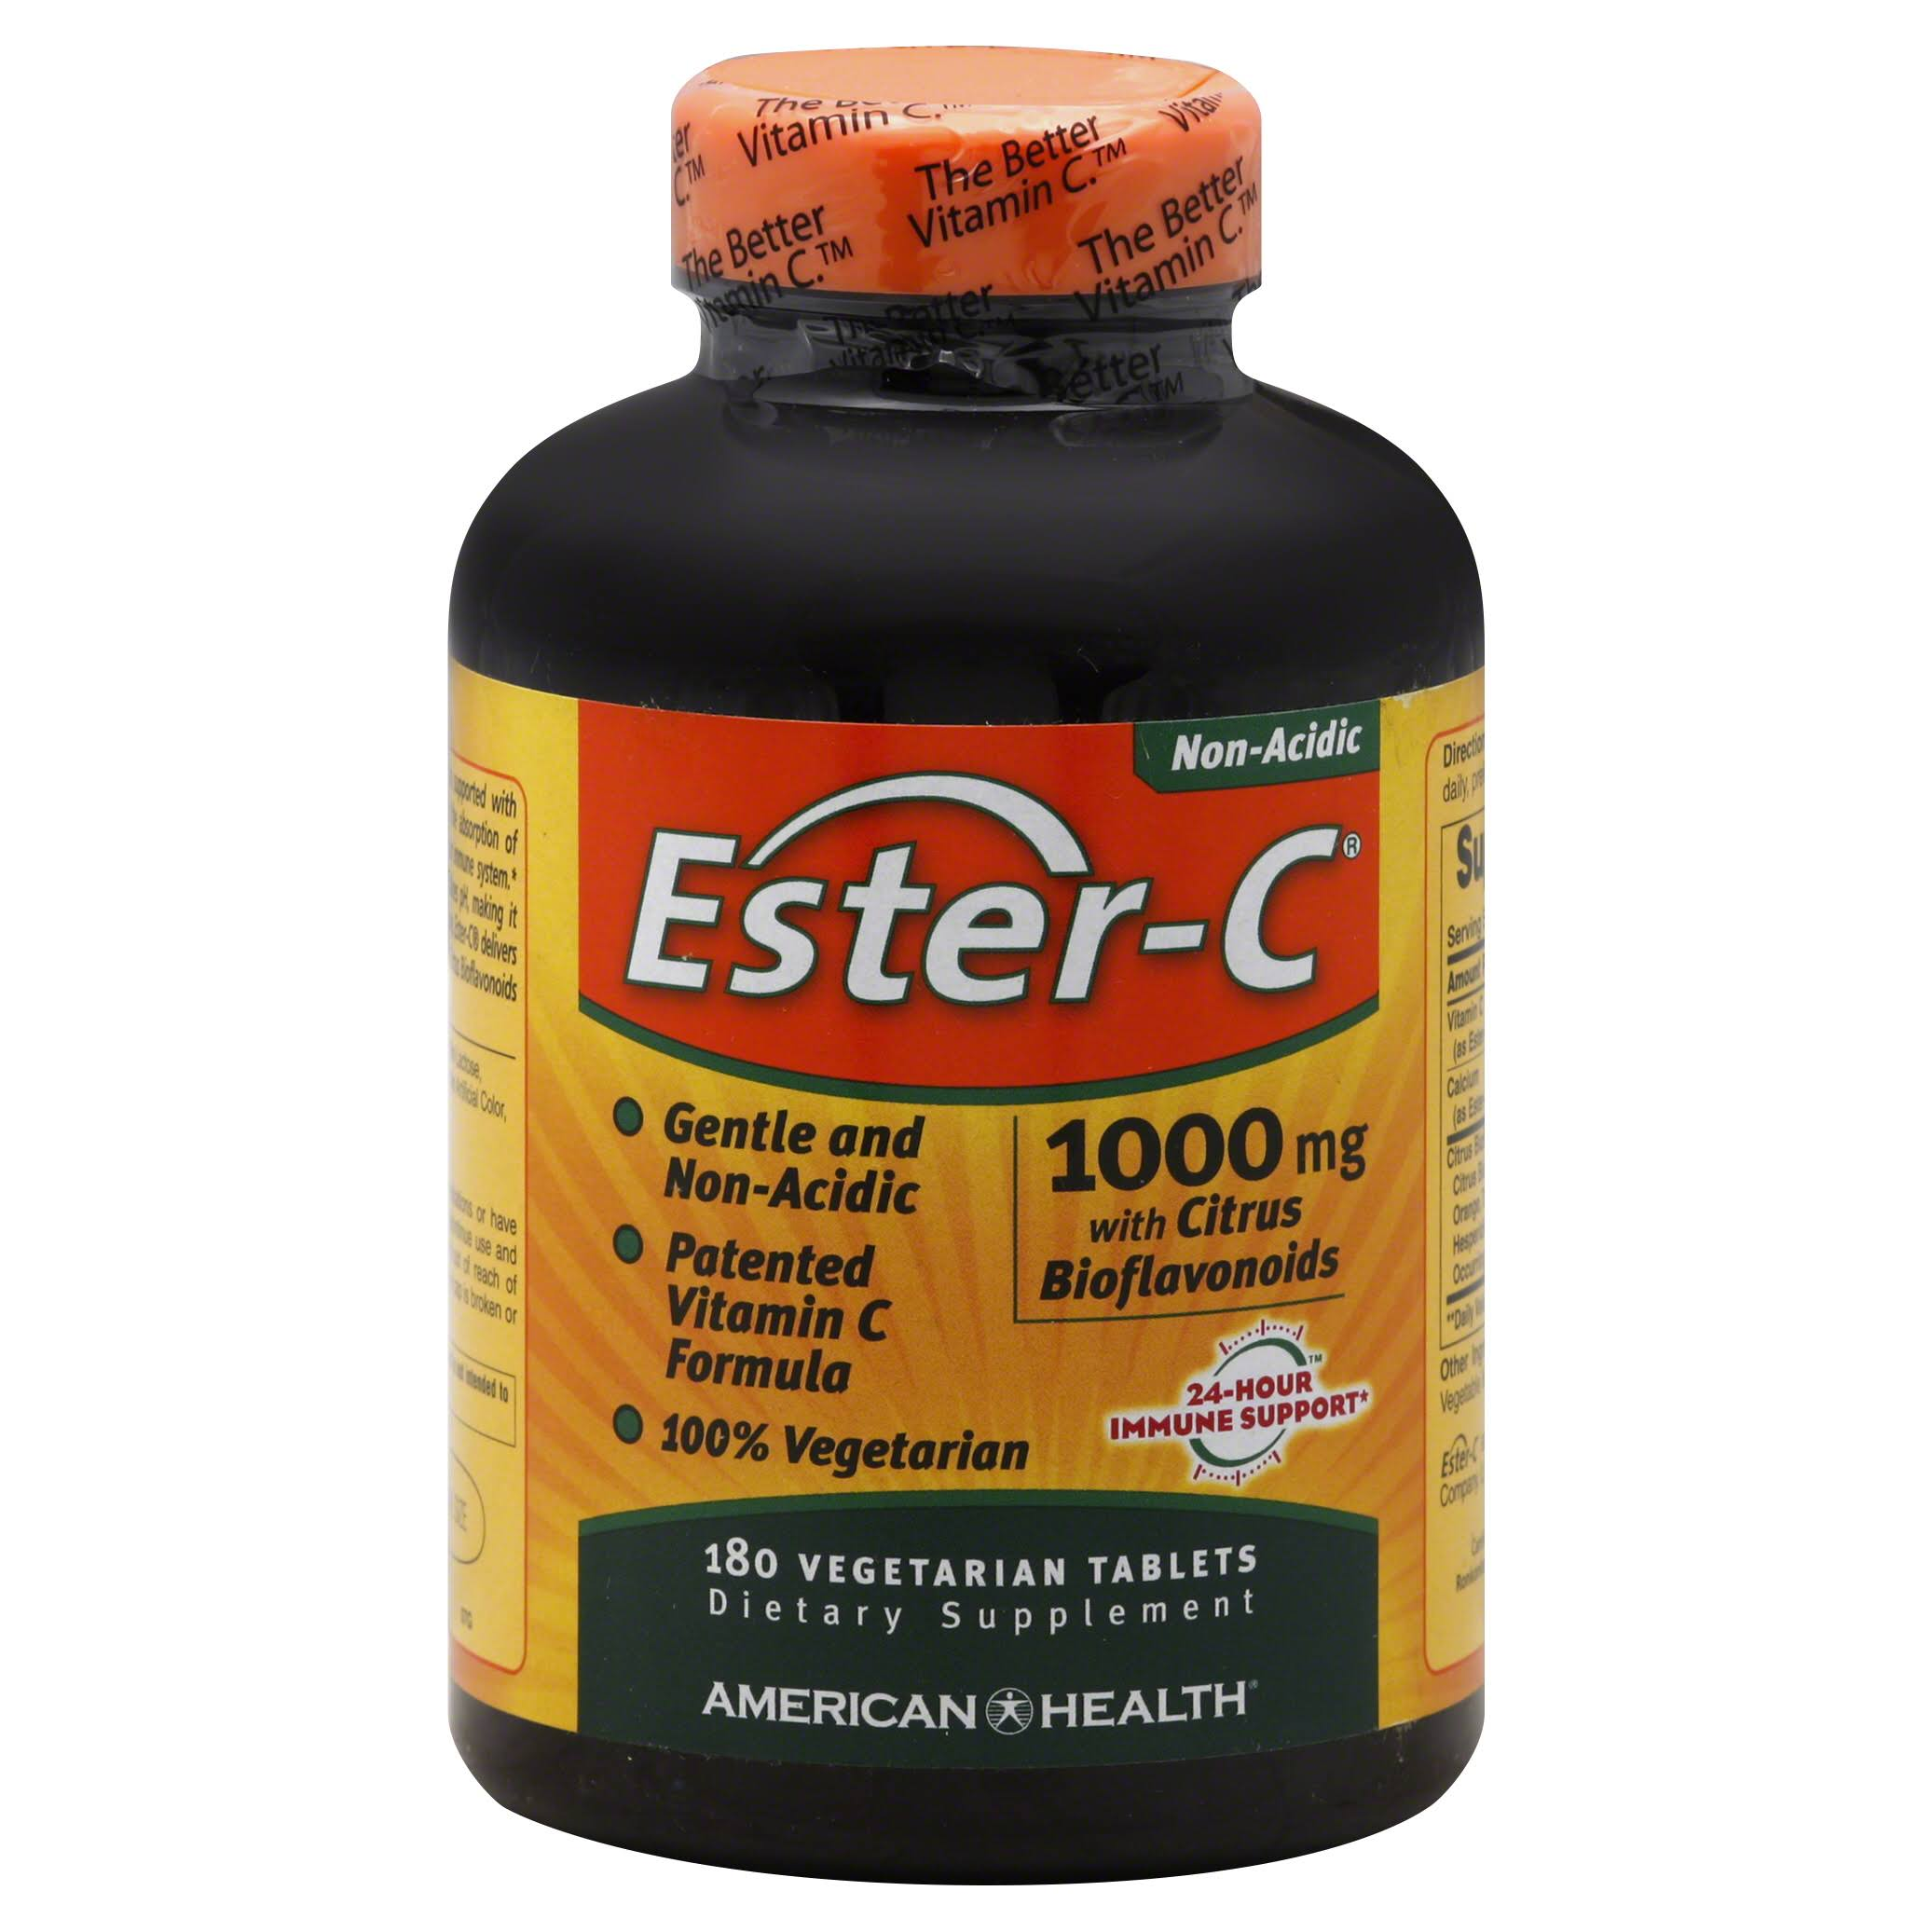 American Health Ester-C with Citrus Bioflavonoids - 1000mg, 180 Vegetarian Tablets